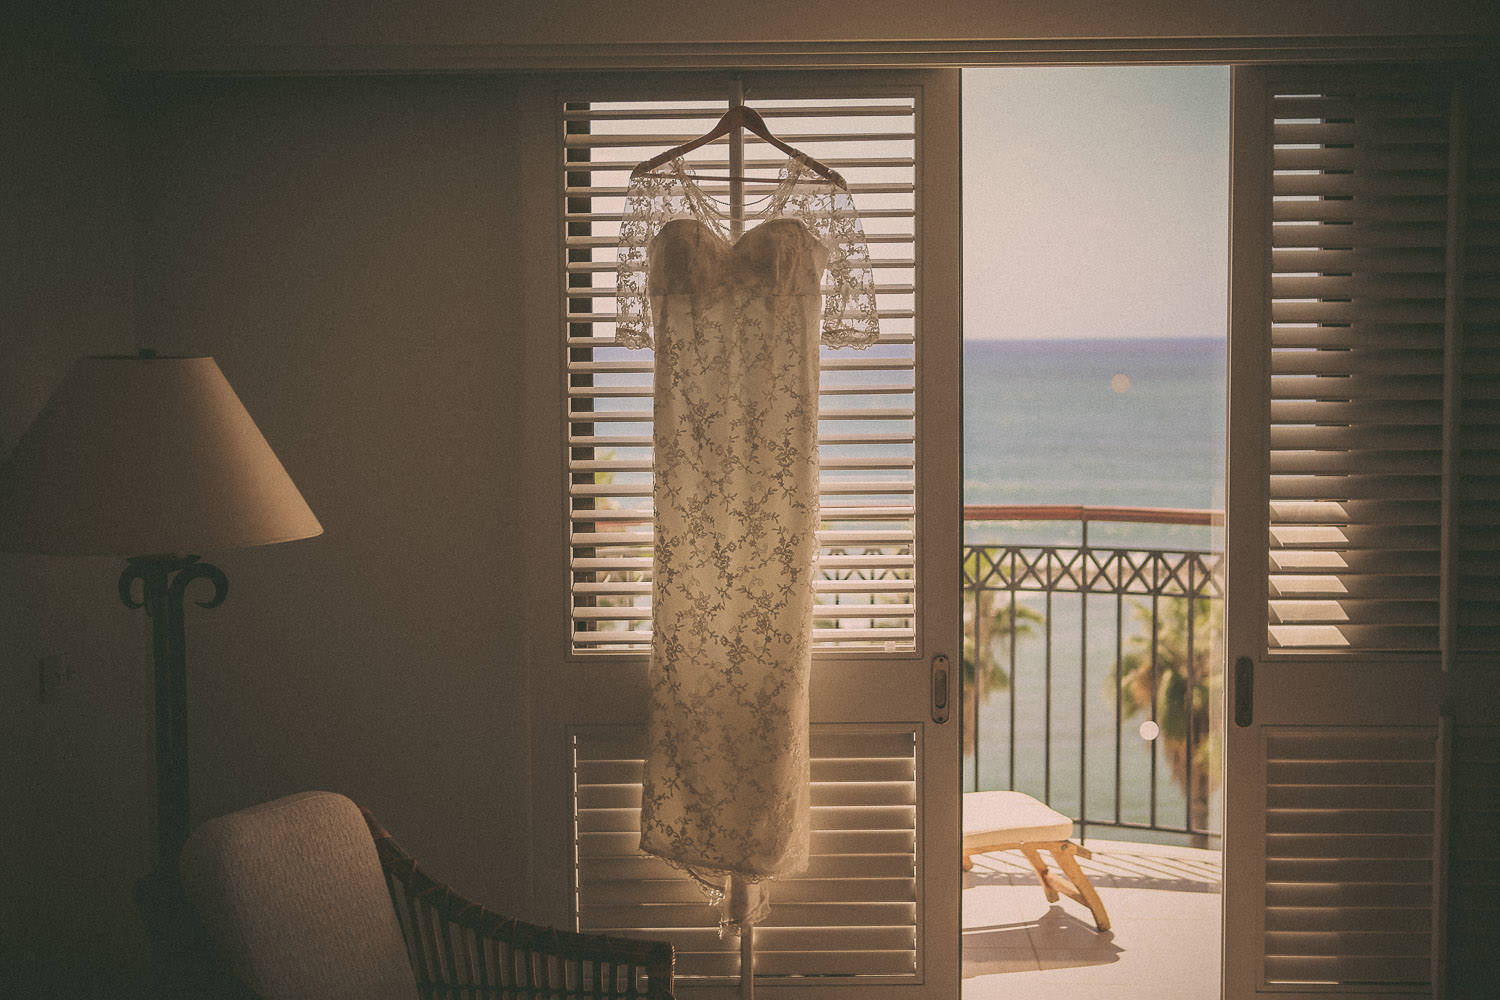 Kirsty Doylel wedding gown hanging in window at the Annabelle in Cyprus